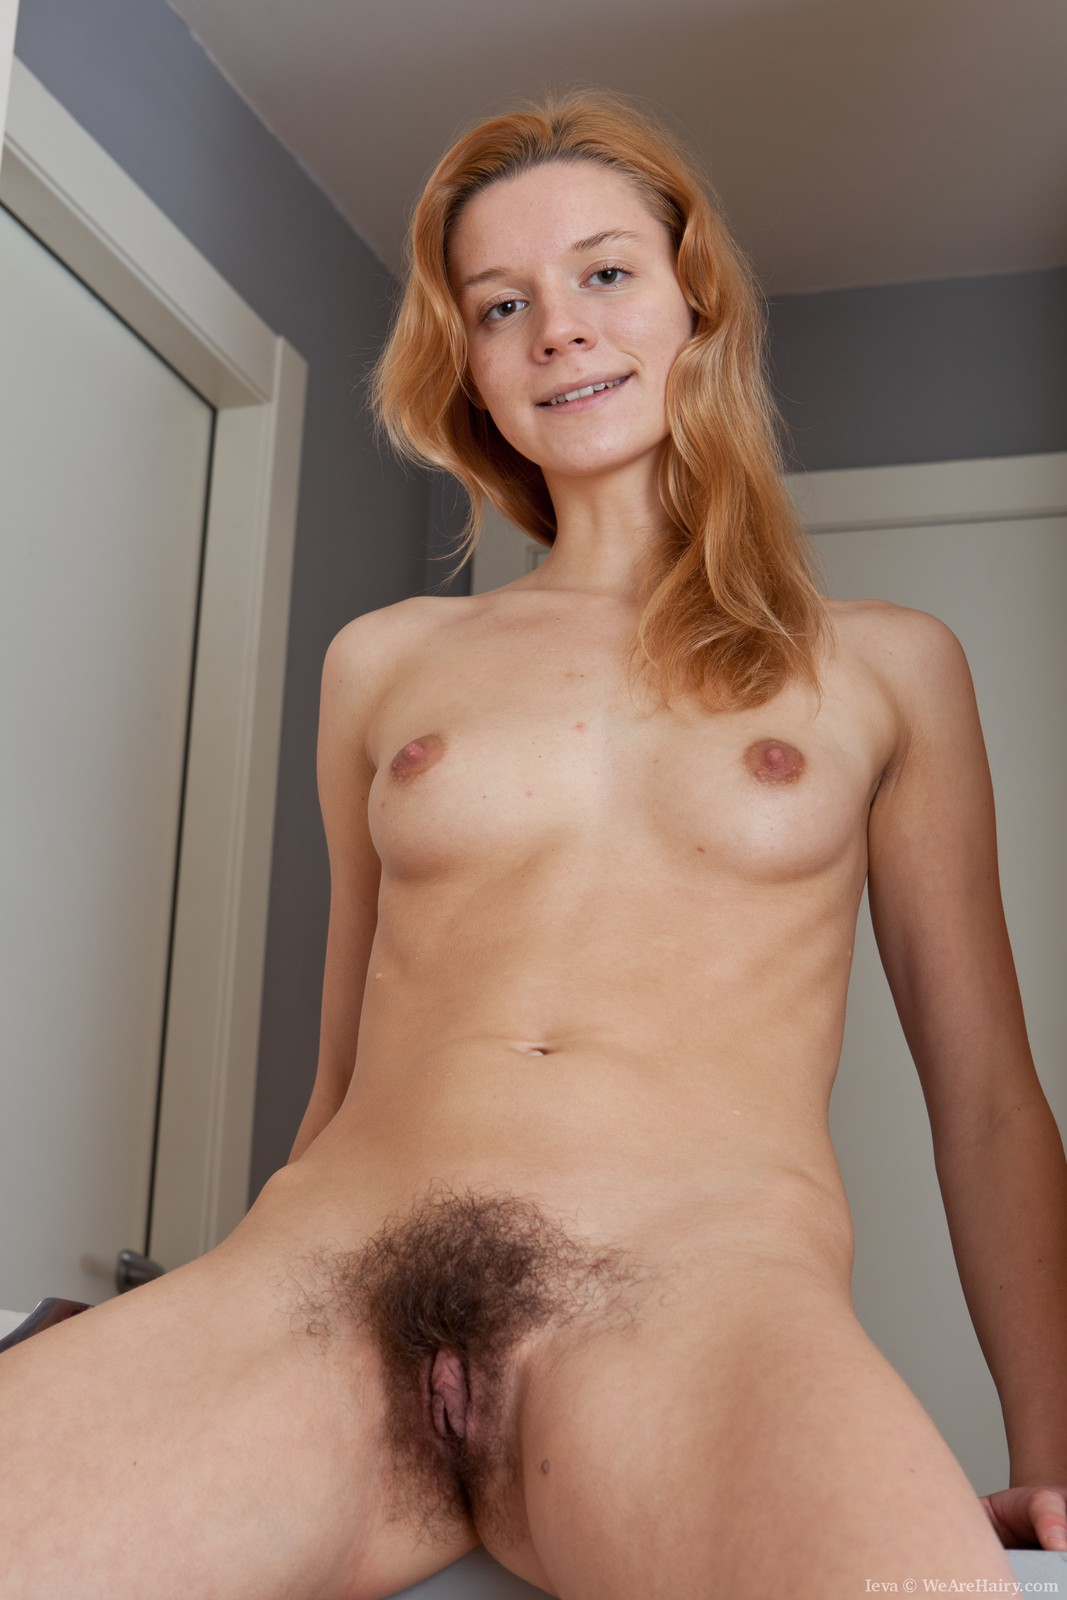 White Girl Hairy Pussy